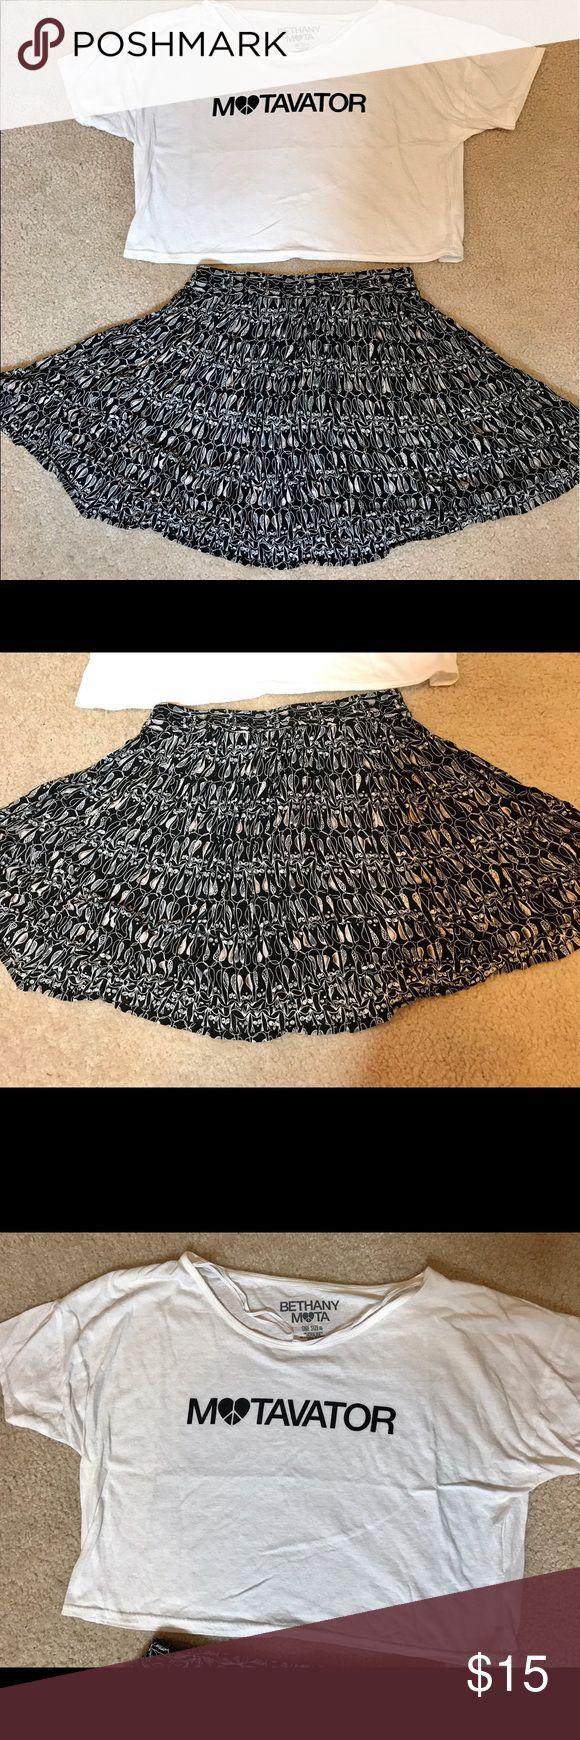 Bethany Mota Collection Bundle Bethany Mota Collection Bundle - Includes cropped limited-edition Motavator tee and pleated owl skirt. Top is one size fits all and skirt is size medium. Super cute and both items can be styled differently! Aeropostale Skirts Circle & Skater